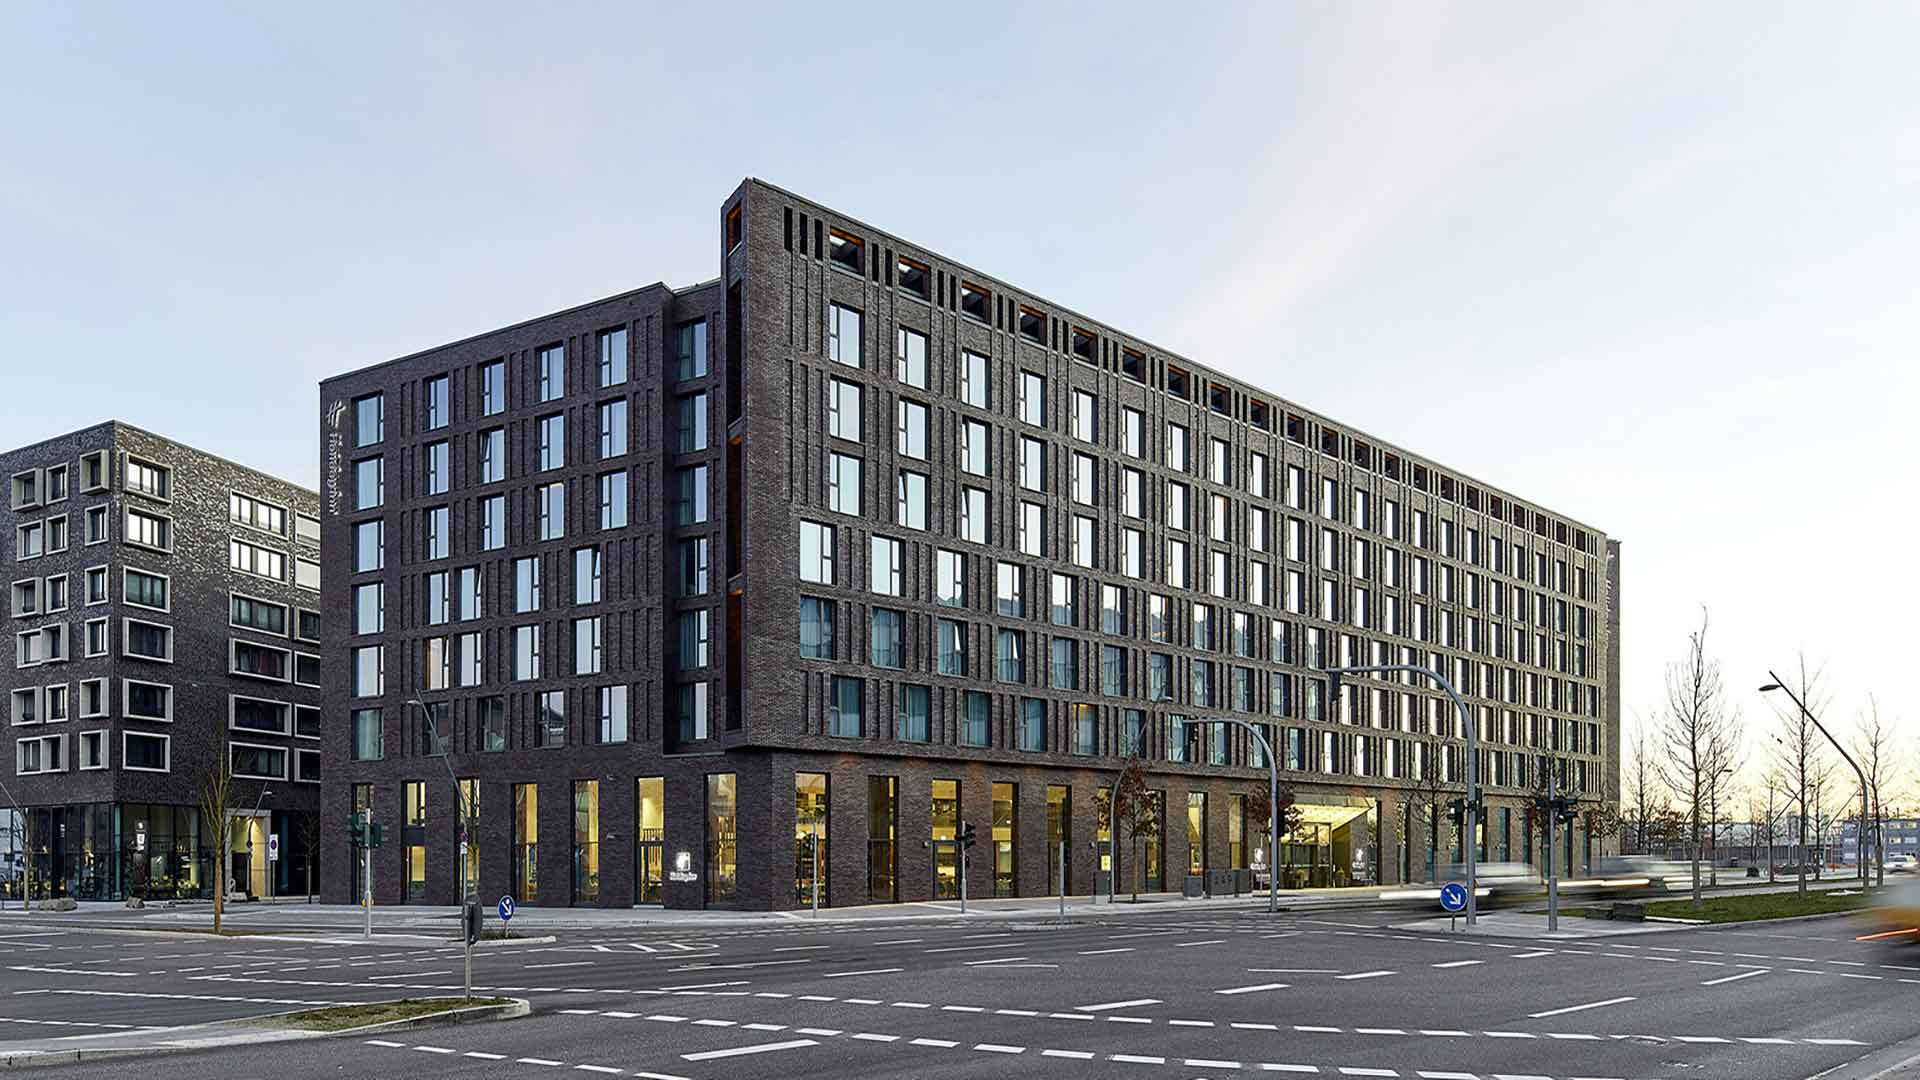 Hotel Holiday Inn, Hafencity Hamburg